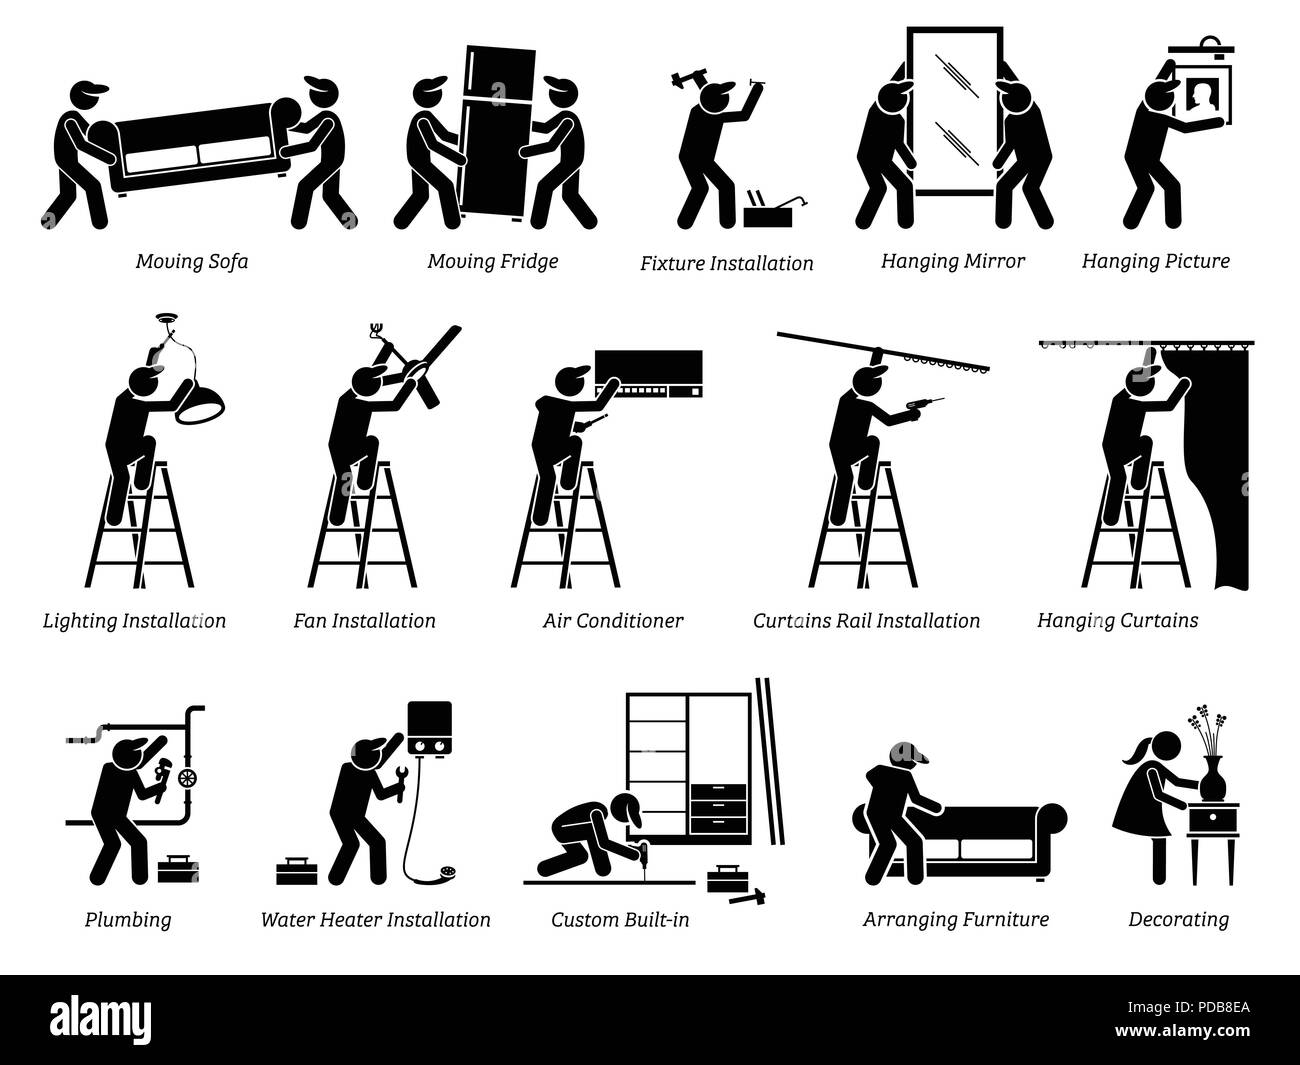 Installation of Home Fixtures and House Decorations Icons. Pictogram depicts installing home fixtures, moving furnitures, and decorating living space. - Stock Image